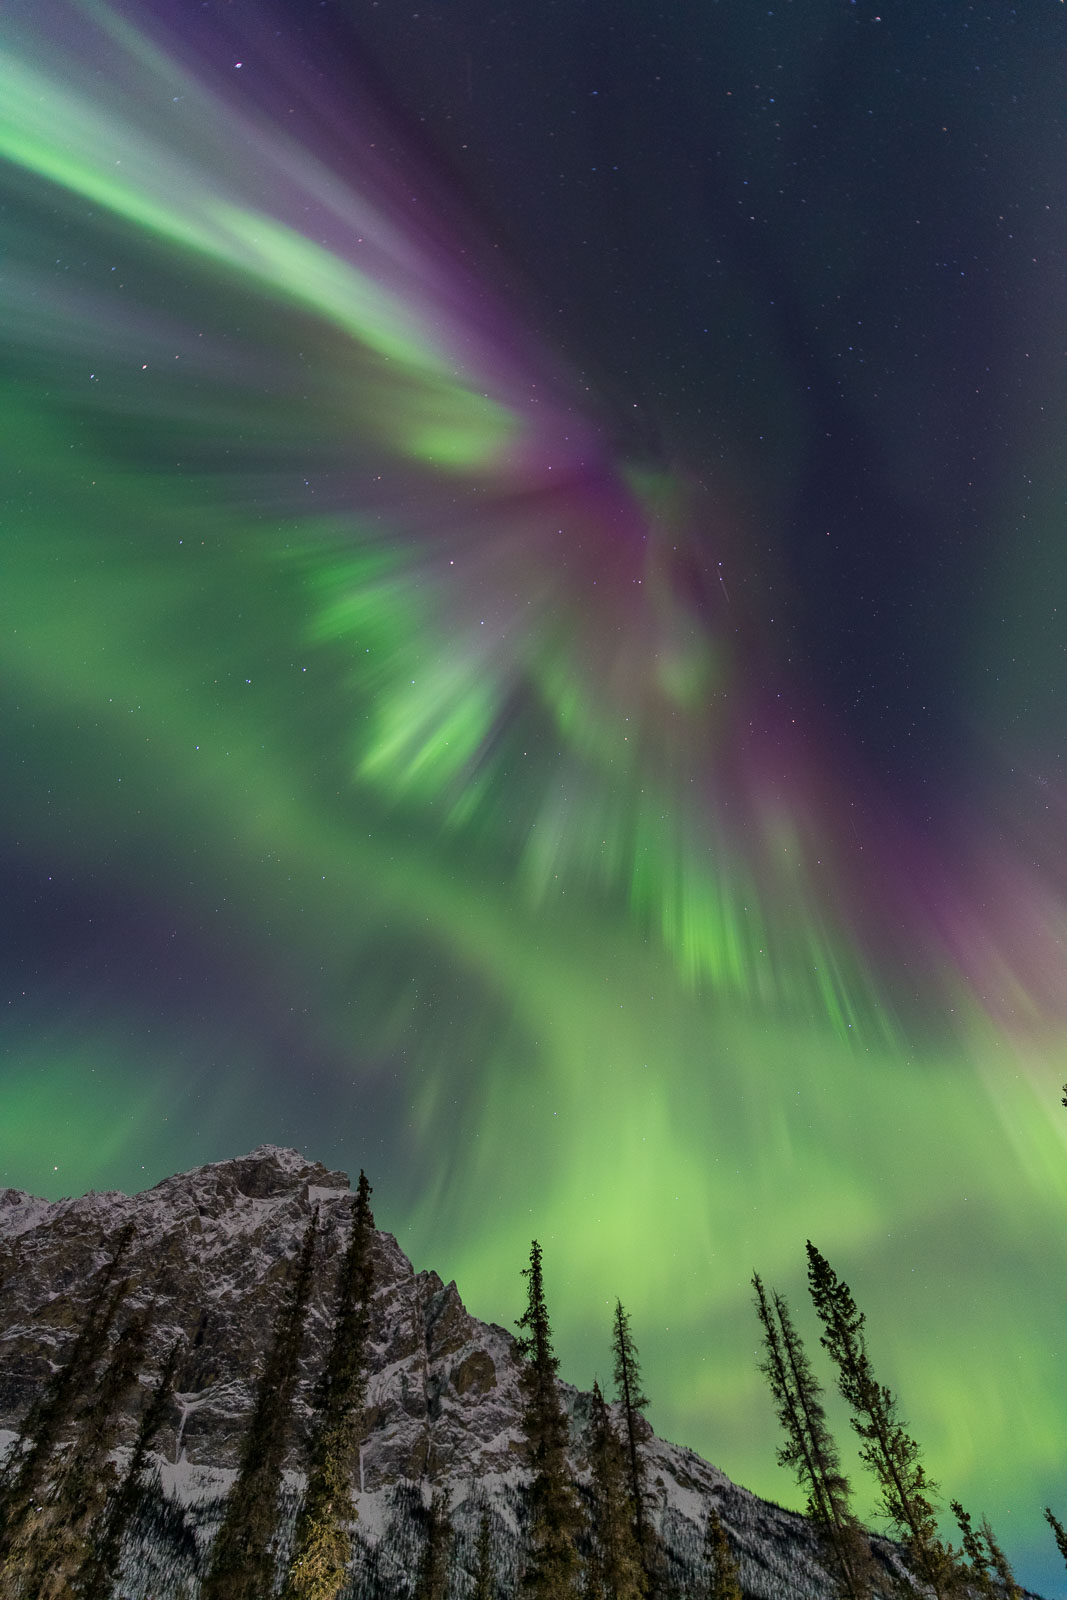 A large display of the aurora borealis fans over Mt. Dillon in the Brooks Range, Alaska.